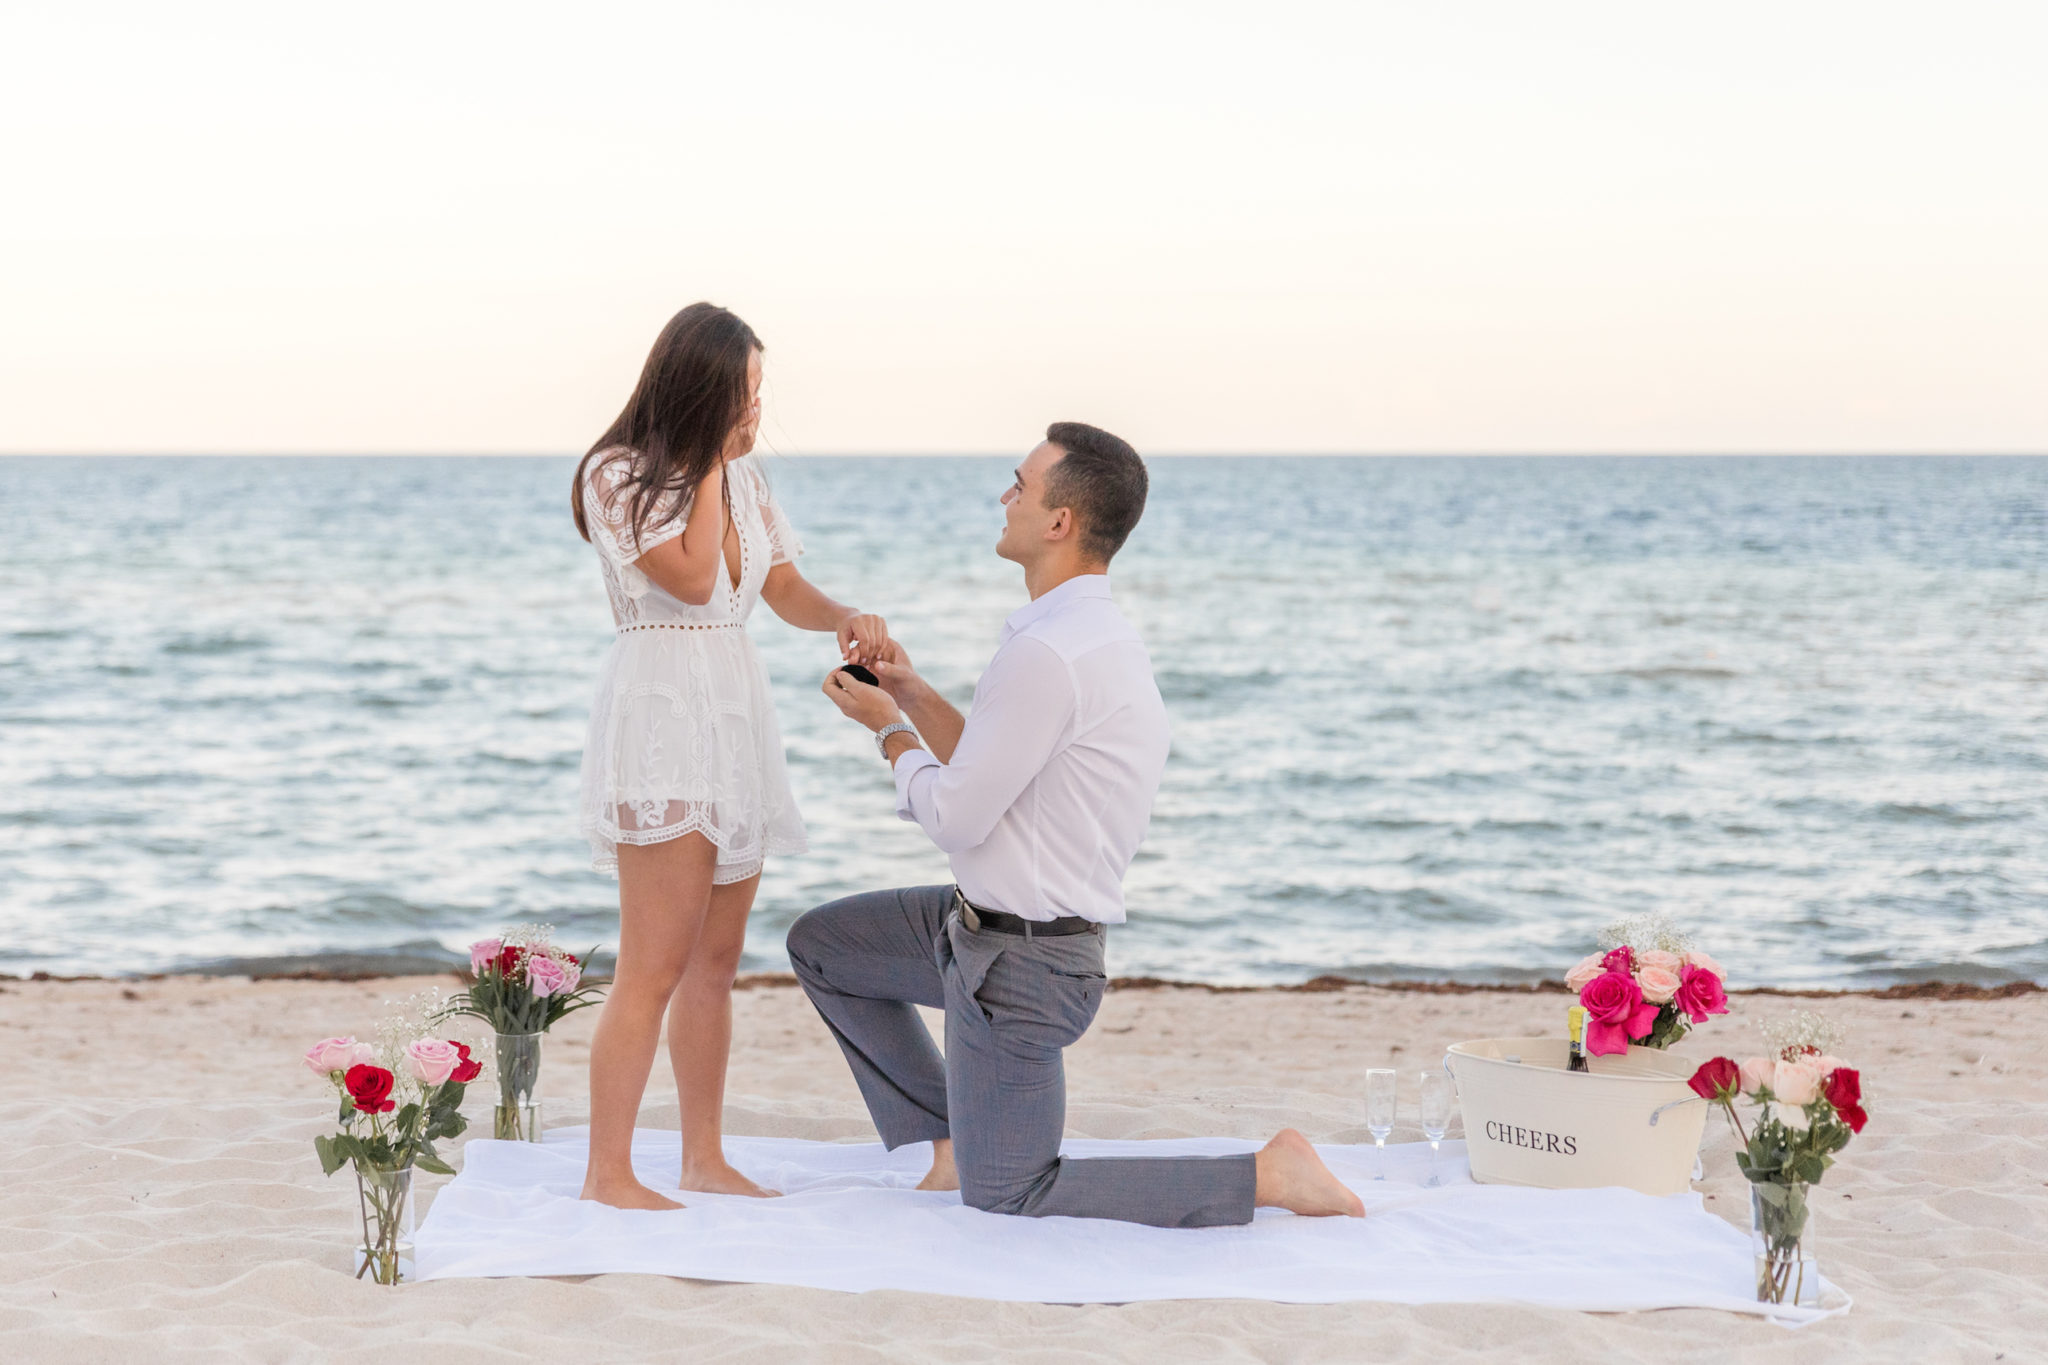 Do You Know Why A Man Proposes On One Knee Down?